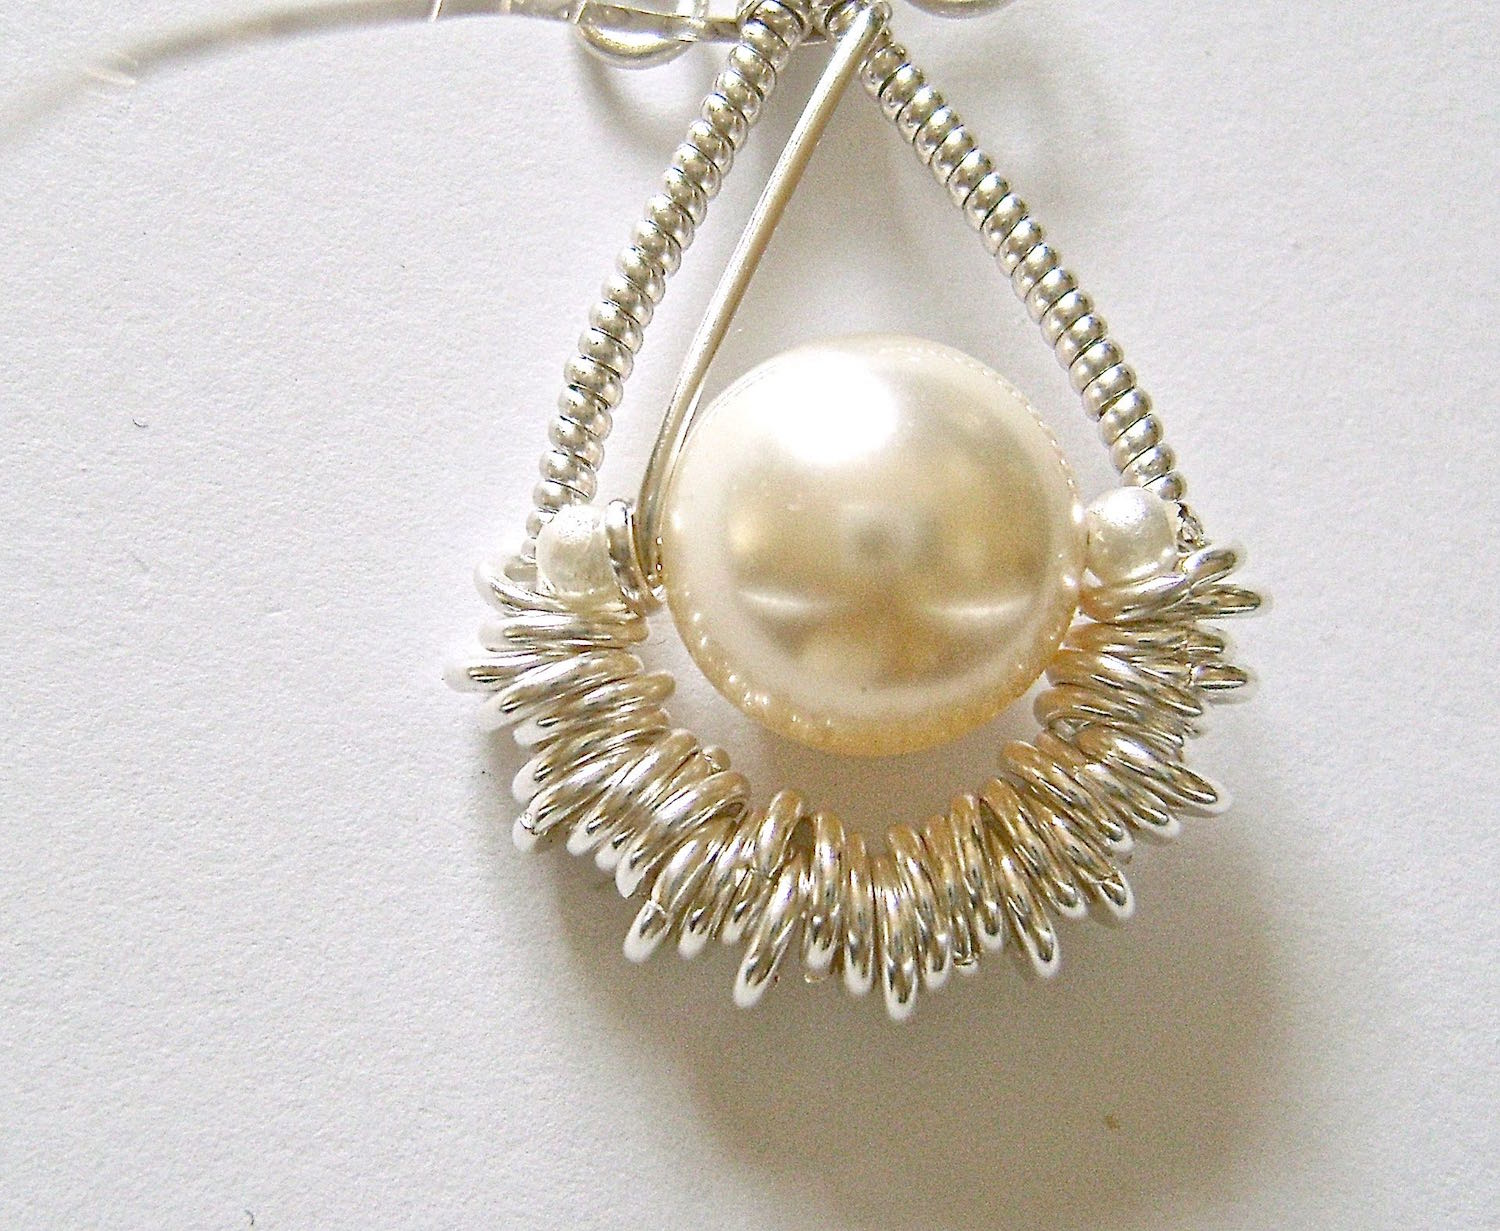 step 11 - Bring the wires down on both sides and wrap them twice between the large pearl and seed pearls.  Cut off the excess wire.